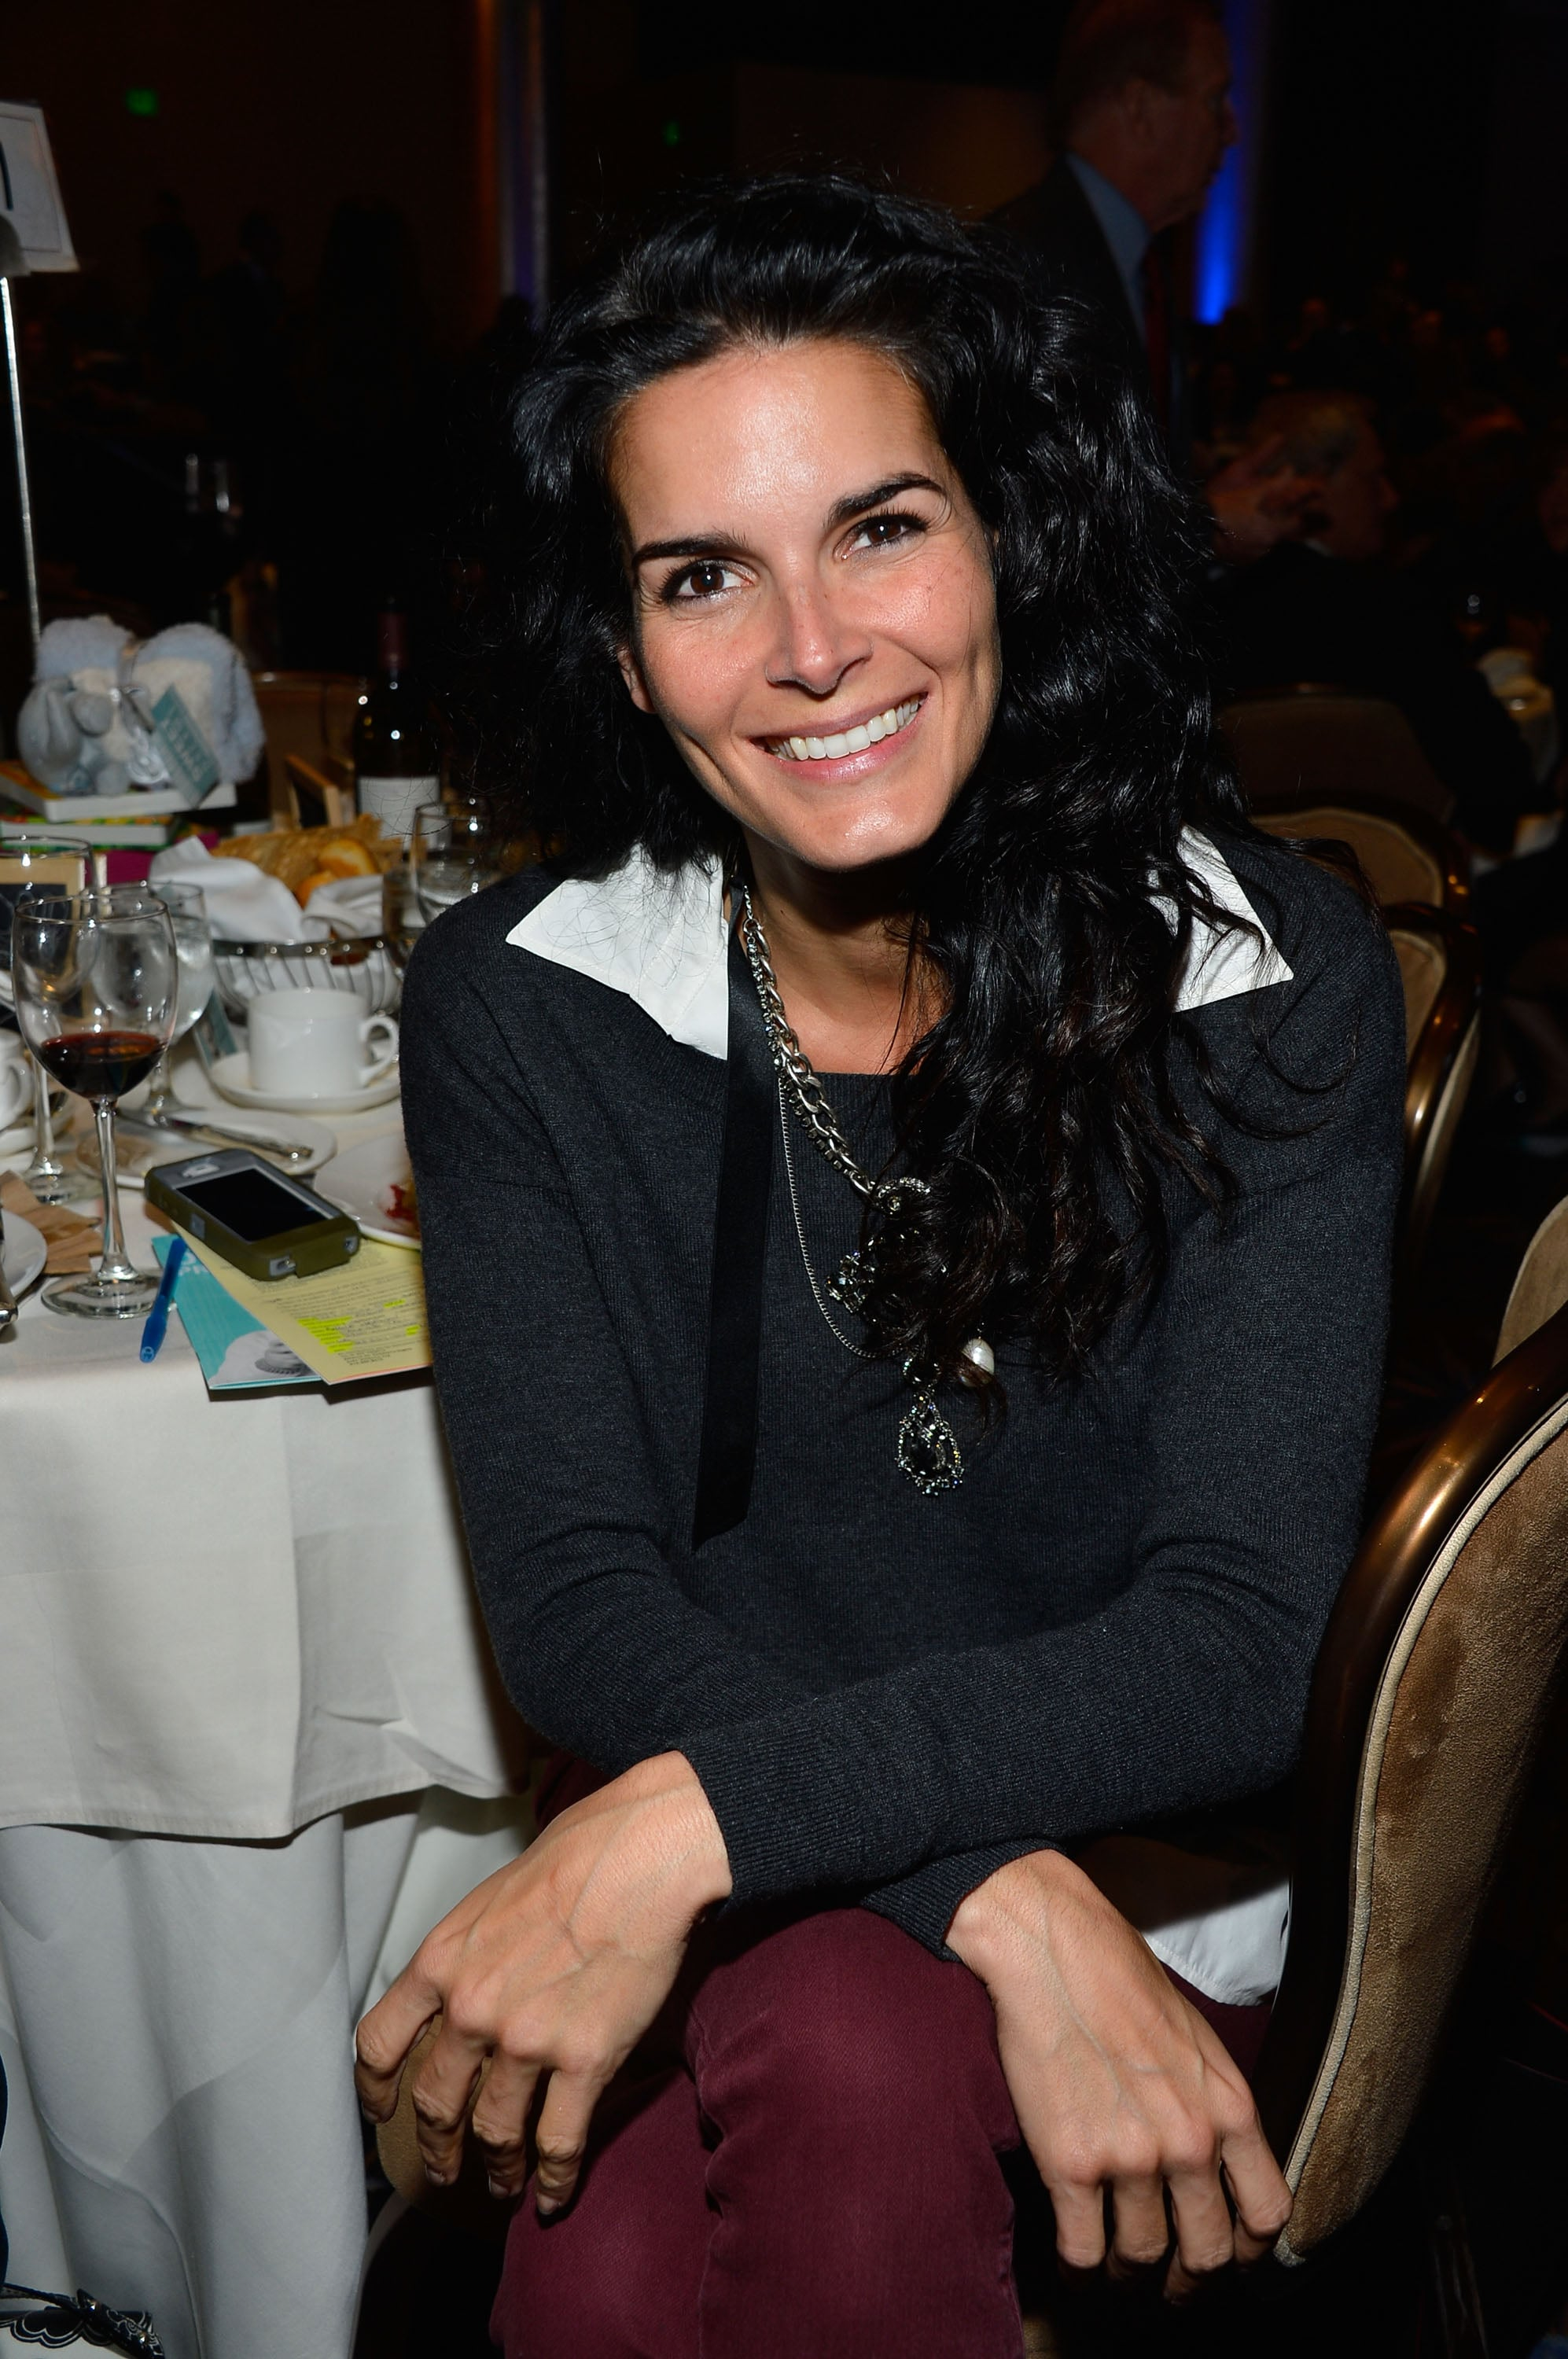 Angie Harmon attended the dinner.